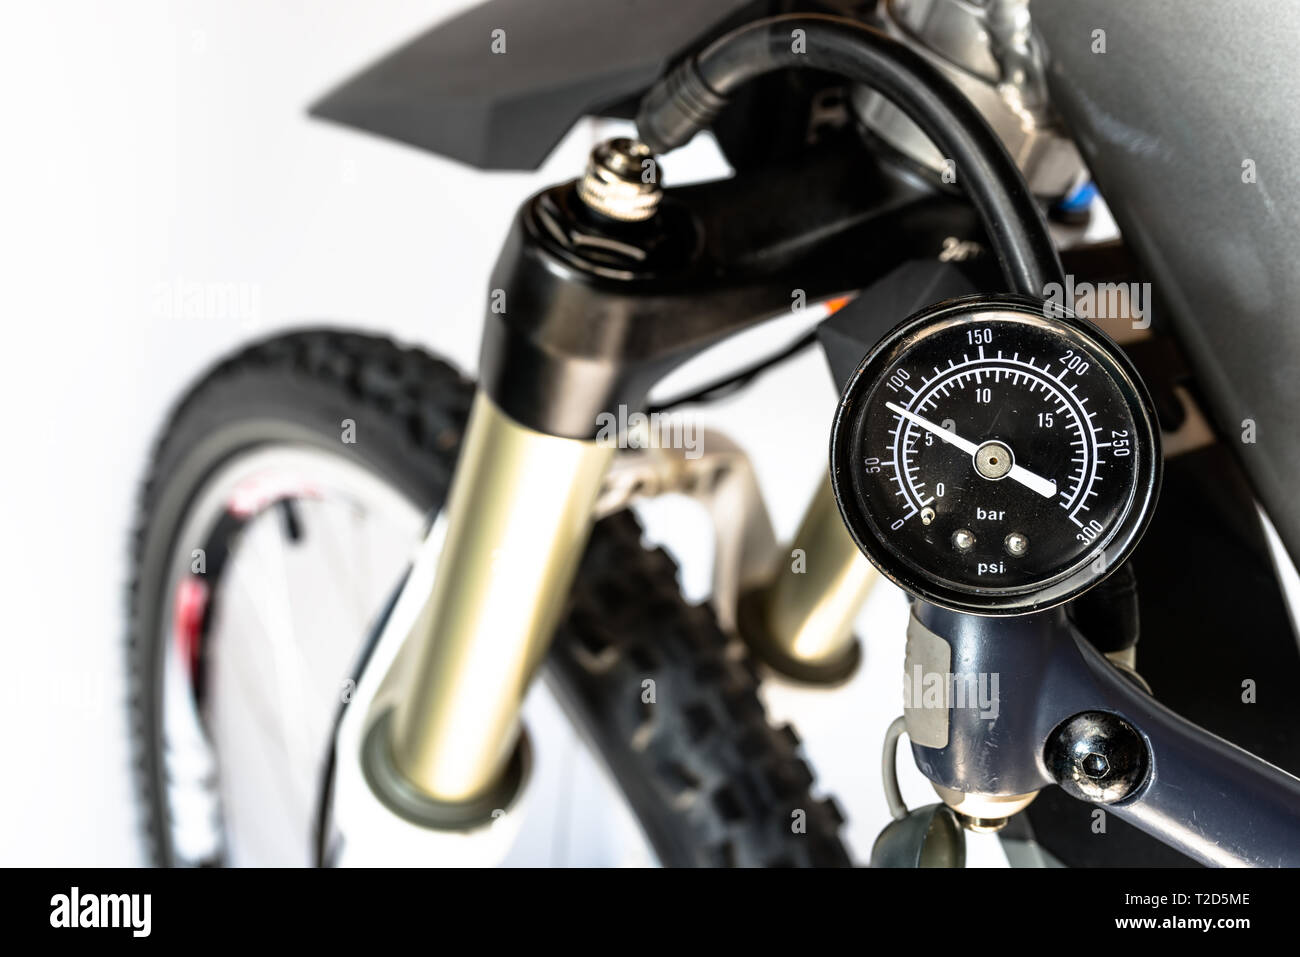 Pumping of the front, bicycle oil-air shock absorber using a specialized hand pump, visible pressure indicator in units of bar / psi. - Stock Image